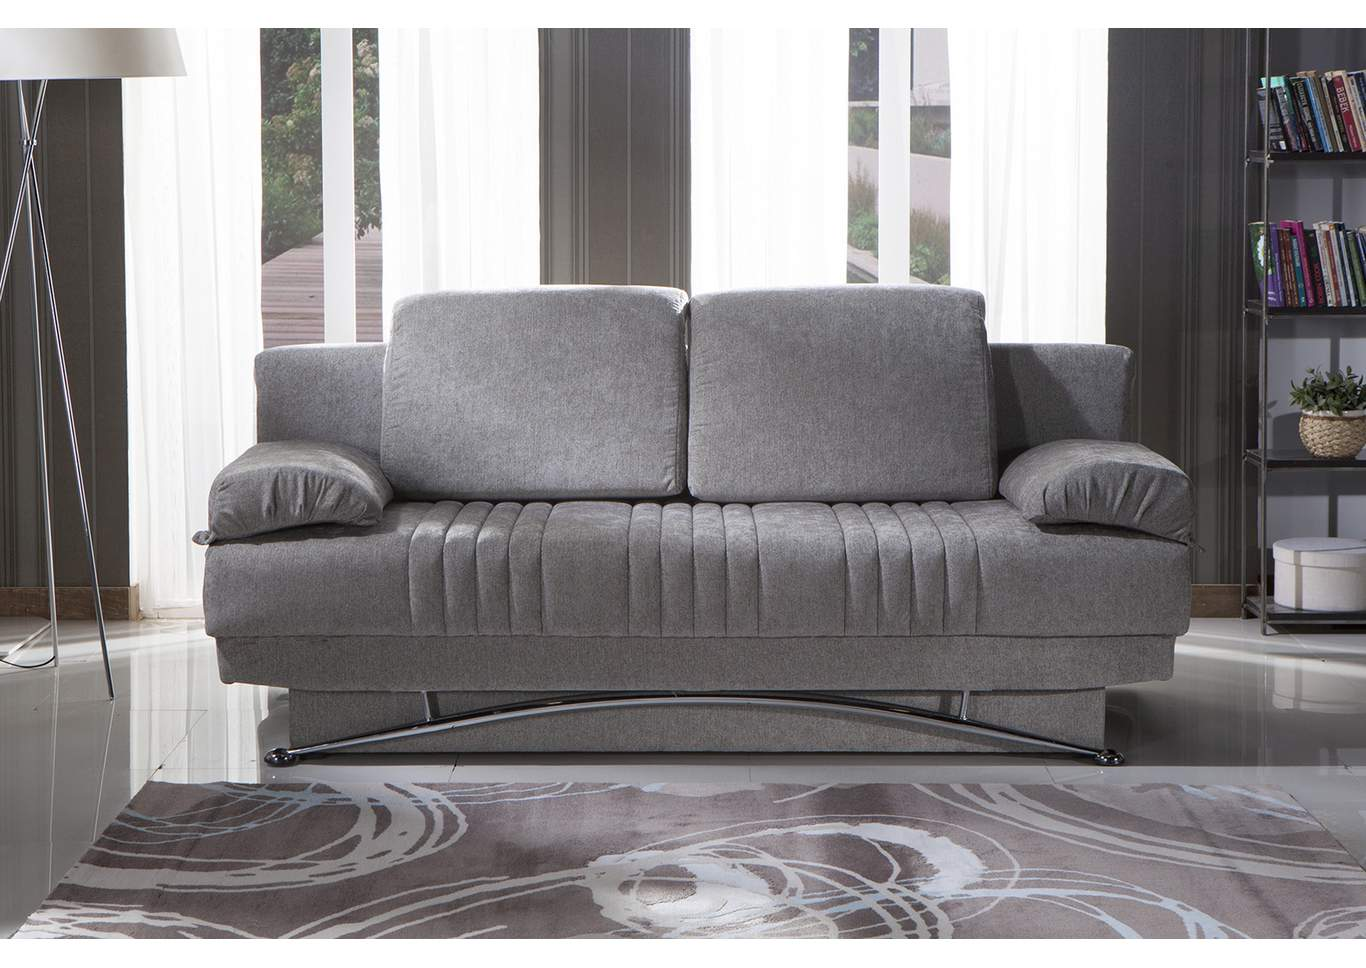 Fantasy Valencia Grey Plain Fabric 3 Seat Sleeper Sofa,Hudson Furniture & Bedding